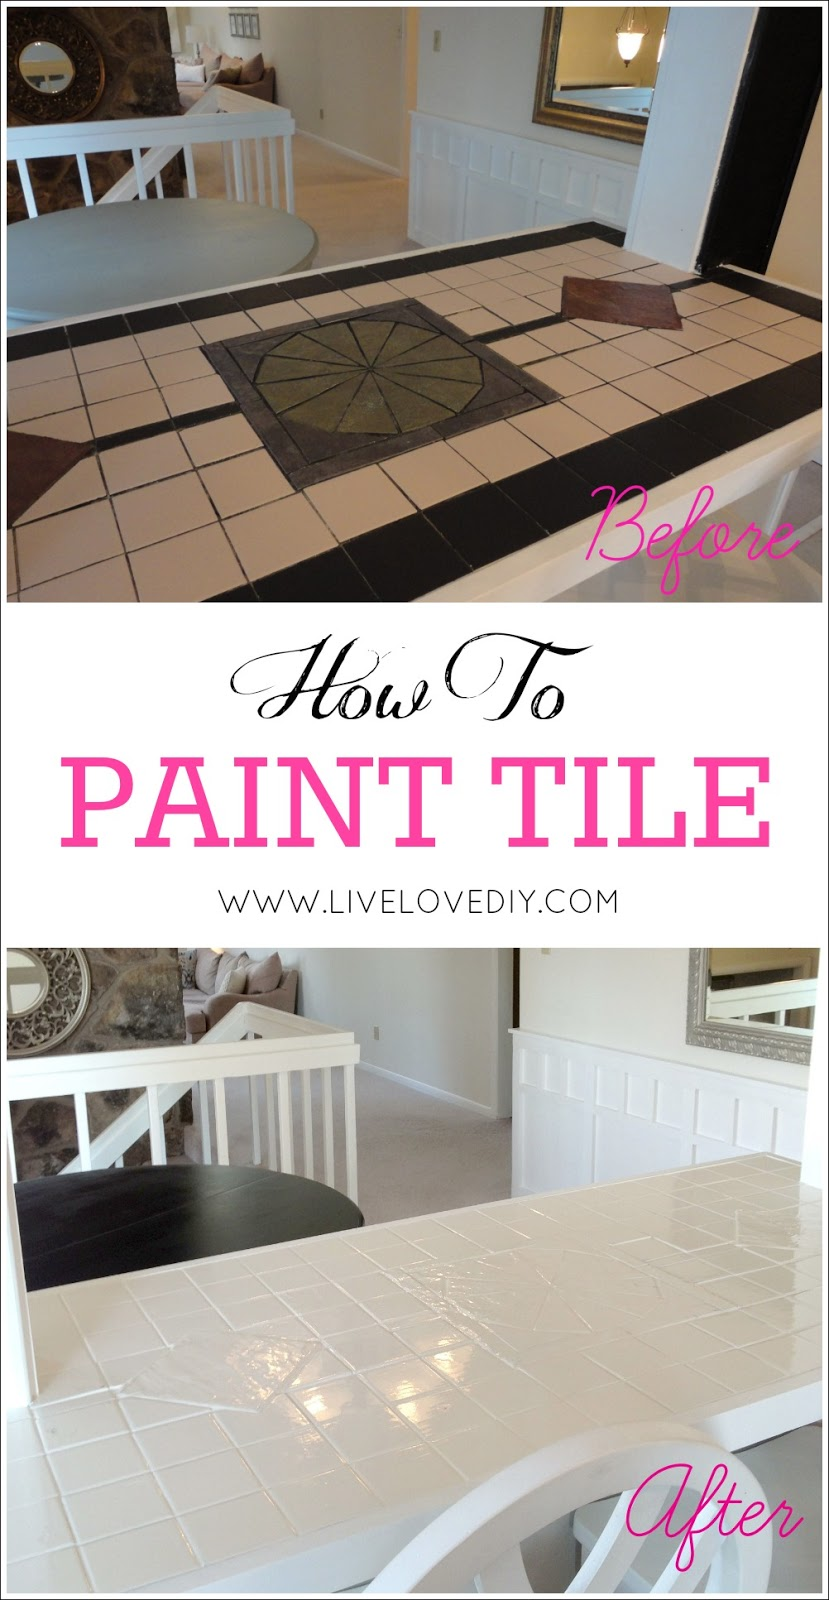 Kitchen Floor Tile Paint Livelovediy How To Paint Tile Countertops